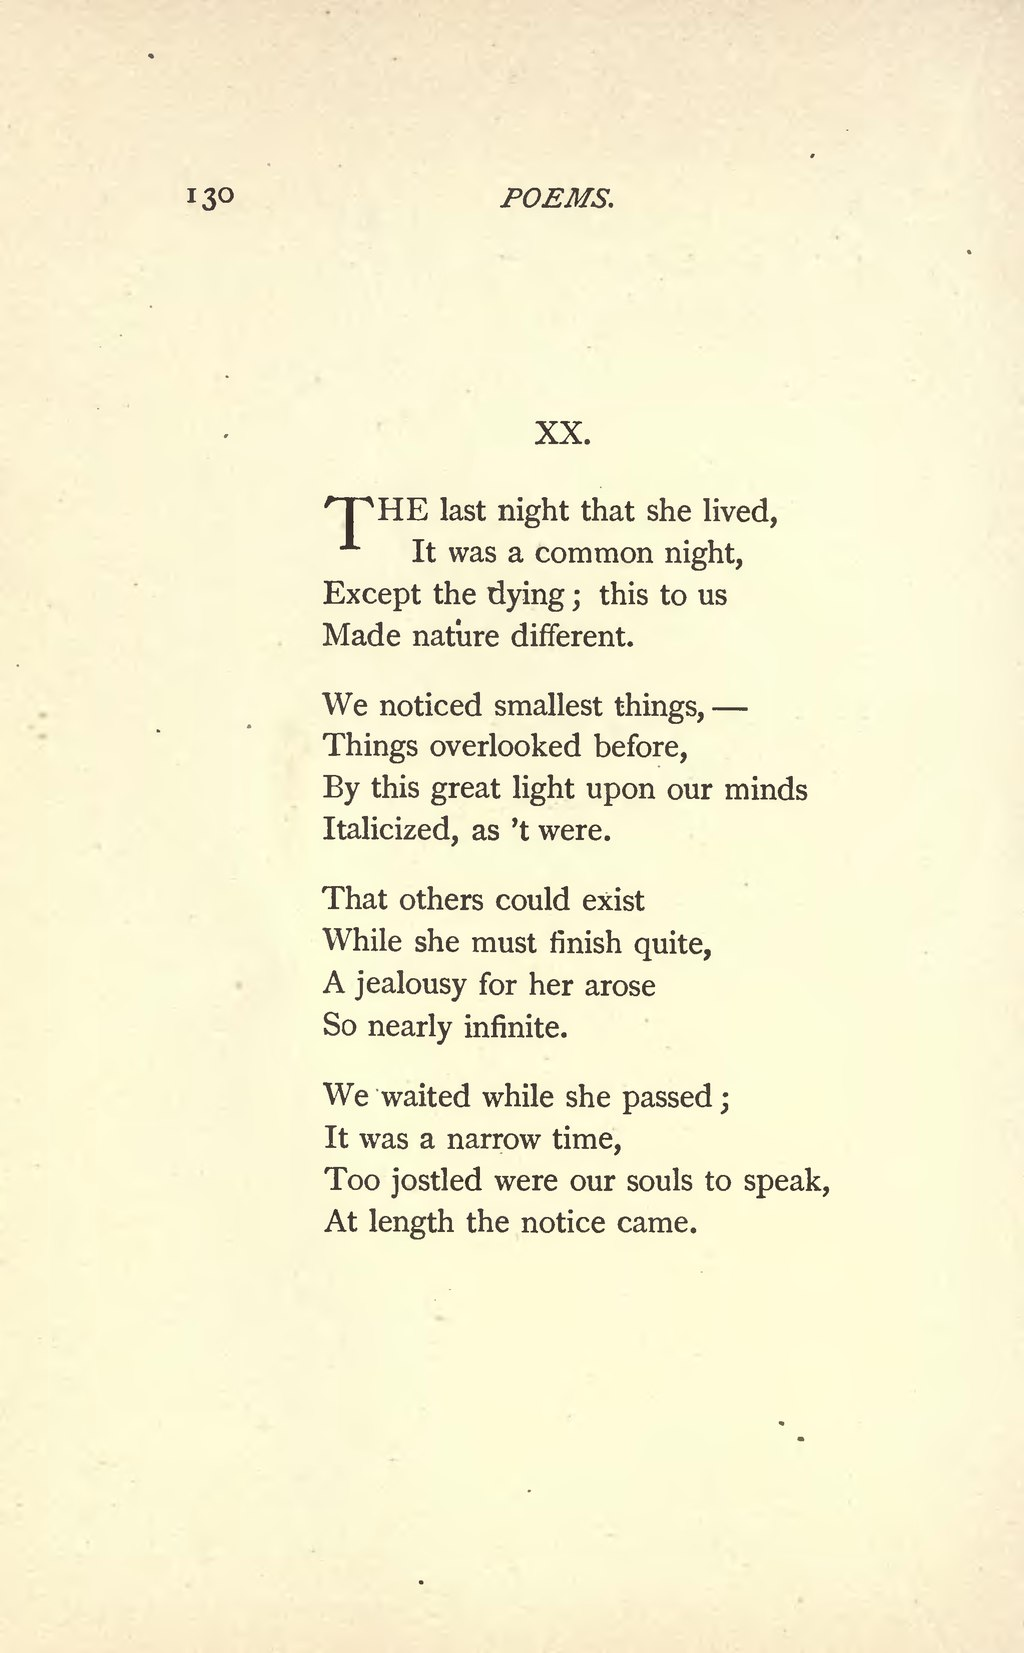 the last night that she lived poem